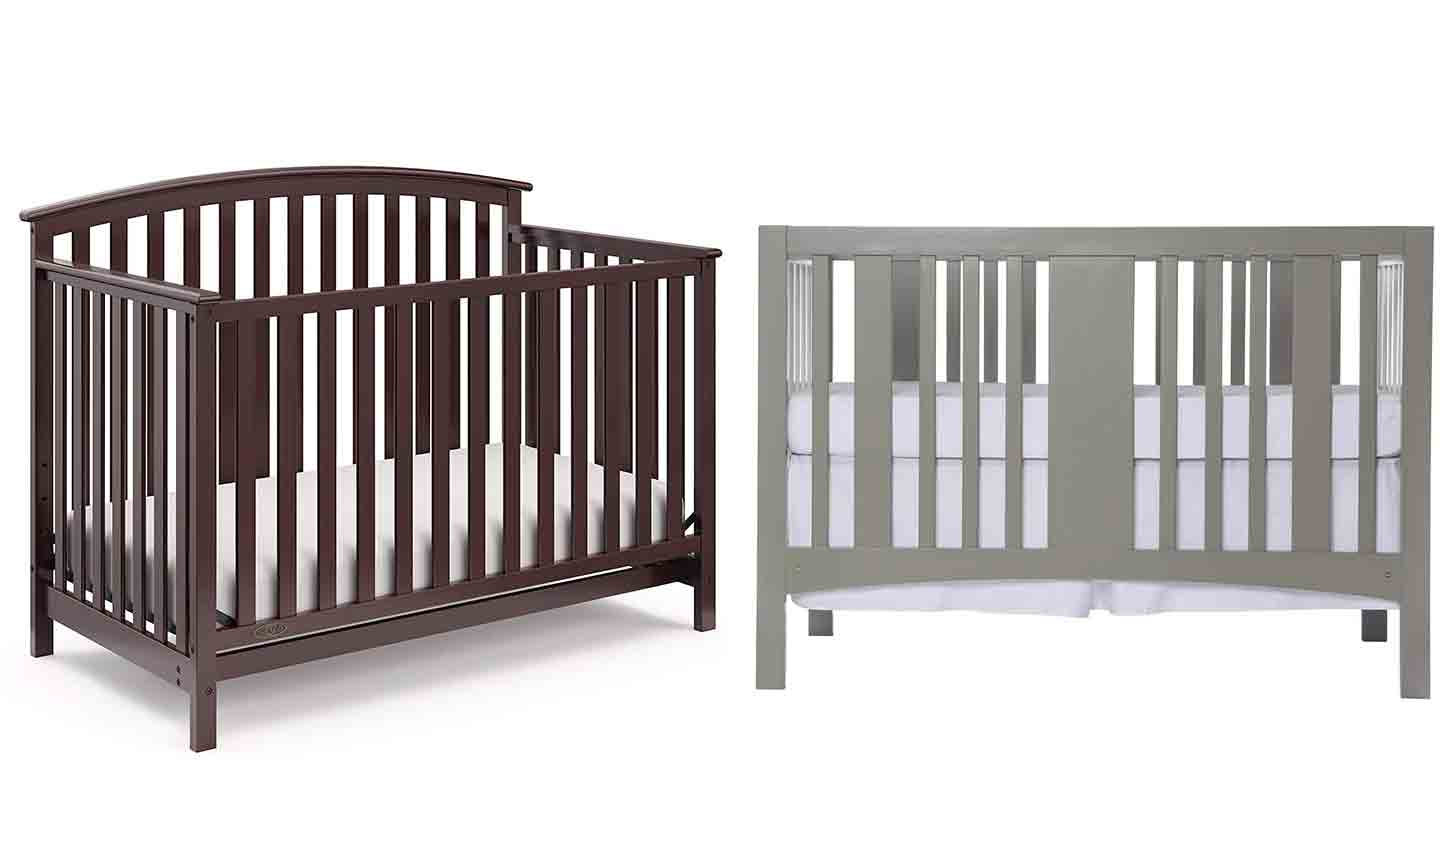 The 10 Best Cheap Cribs To Buy In 2019 For Under 200 Dollars